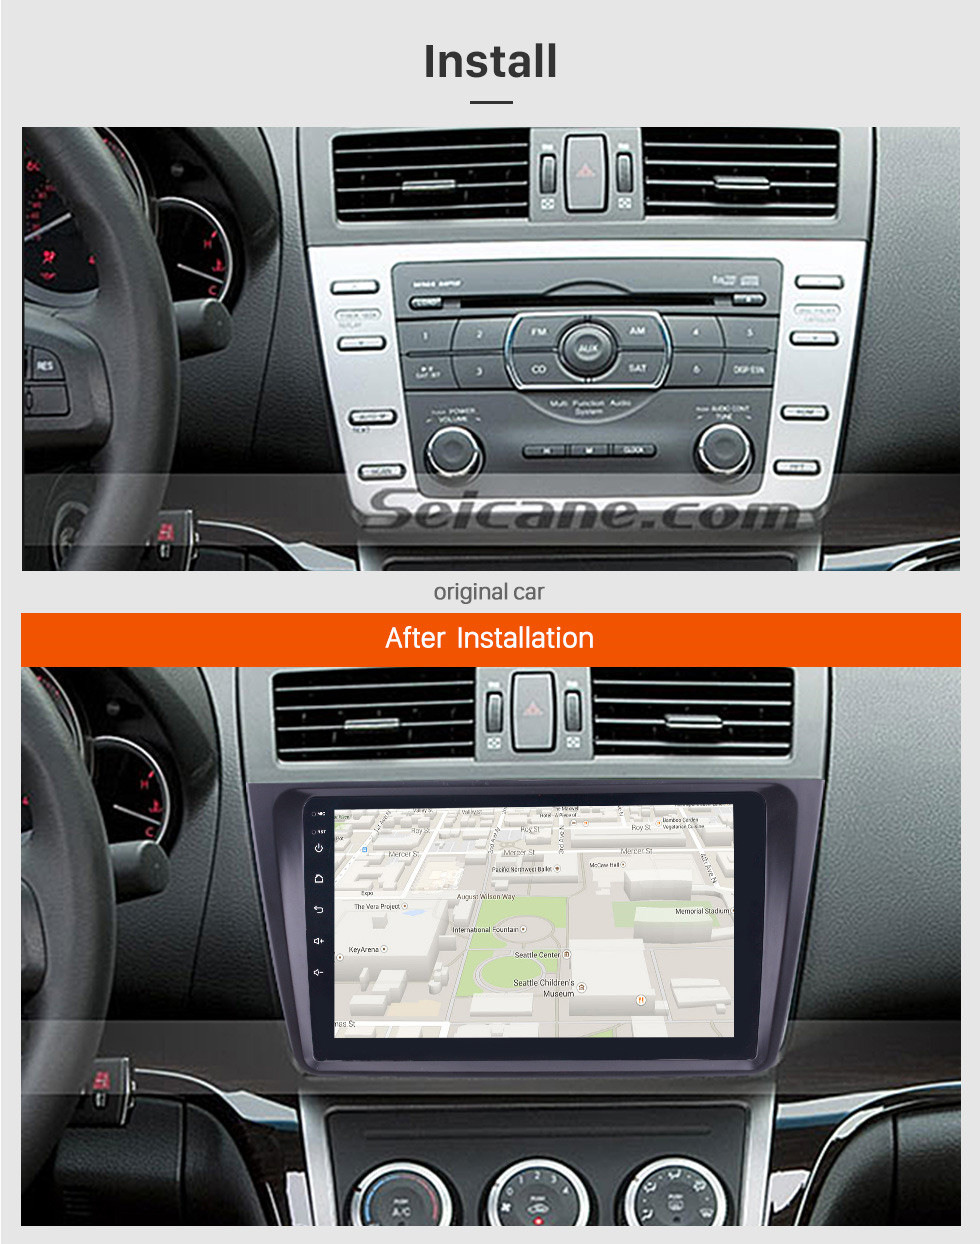 Seicane In dash Radio 9 inch HD 1024*600 Touchscreen Android 10.0 For 2008 2009 2010 2011-2015 Mazda 6 Rui wing GPS Navigation System Support Steering Wheel Control DVR OBDII WiFi Backup Camera DAB+